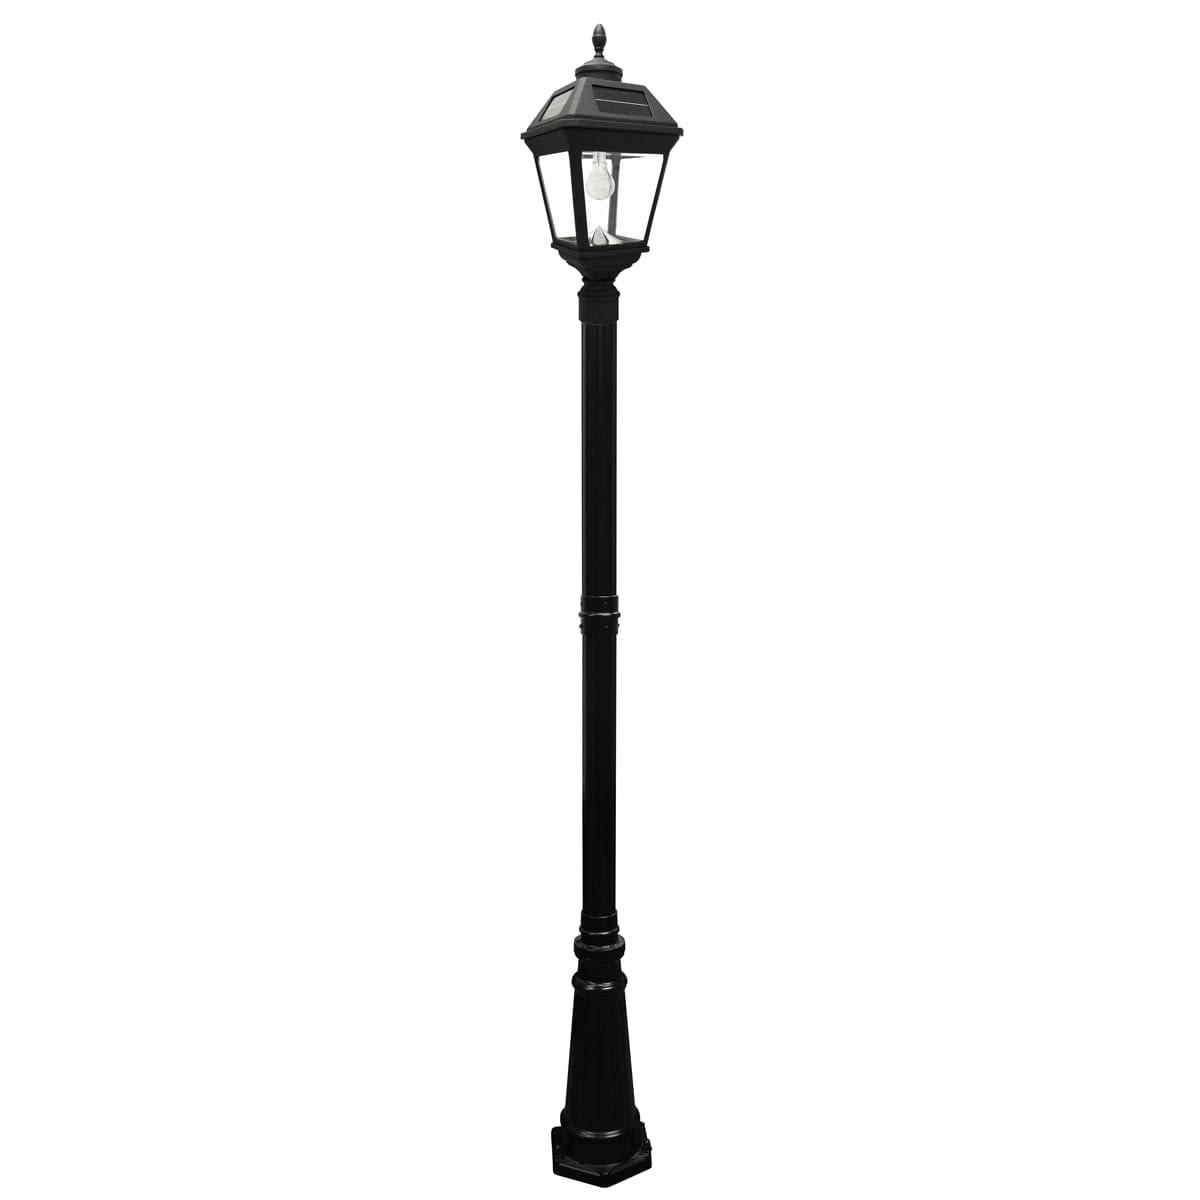 IMPERIAL Bulb Solar Lamp and Single Lamp Post with GS-Solar LED Light Bulb GS-97B-S